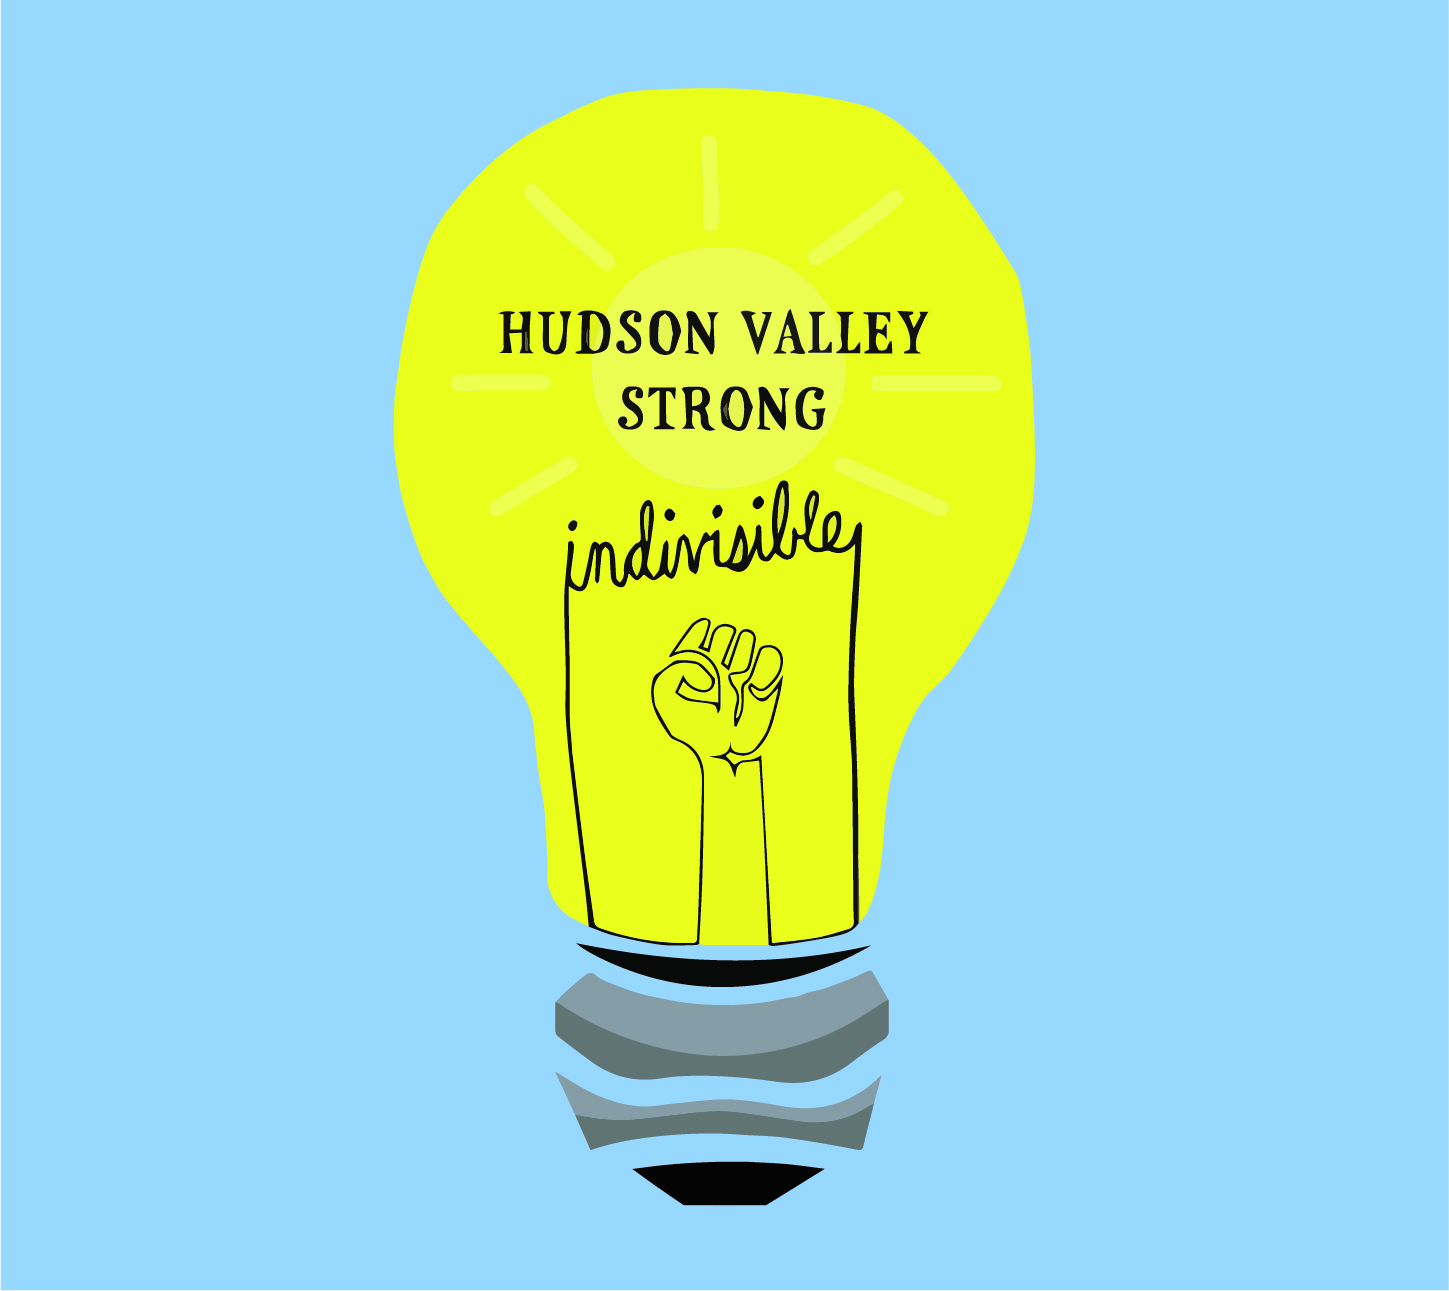 HUDSON VALLEY STRONG